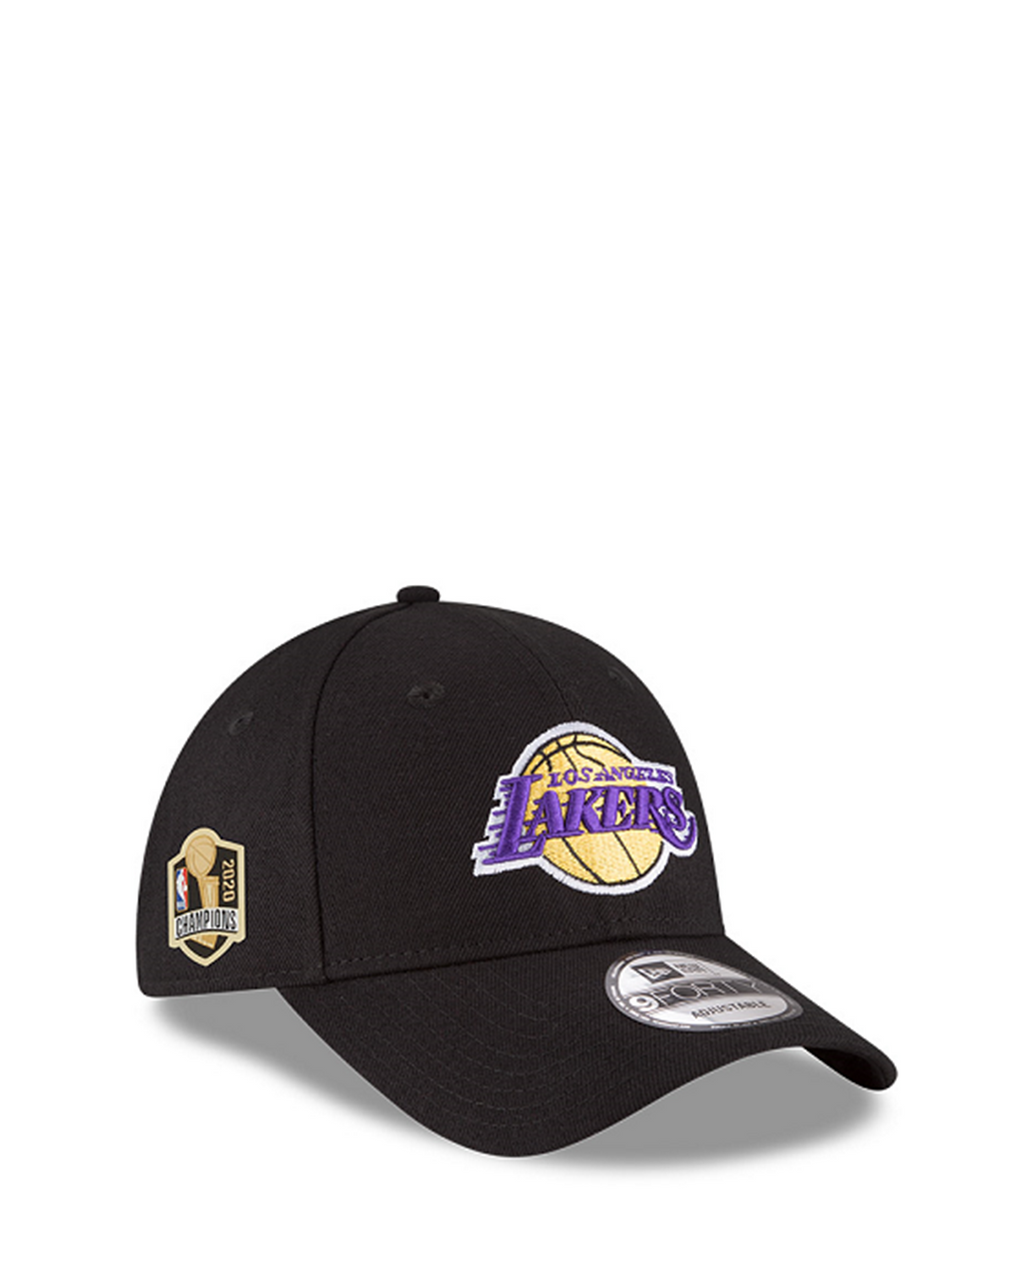 Los Angeles Lakers 2020 NBA Champions 9FORTY Side Patch Adjustable Cap